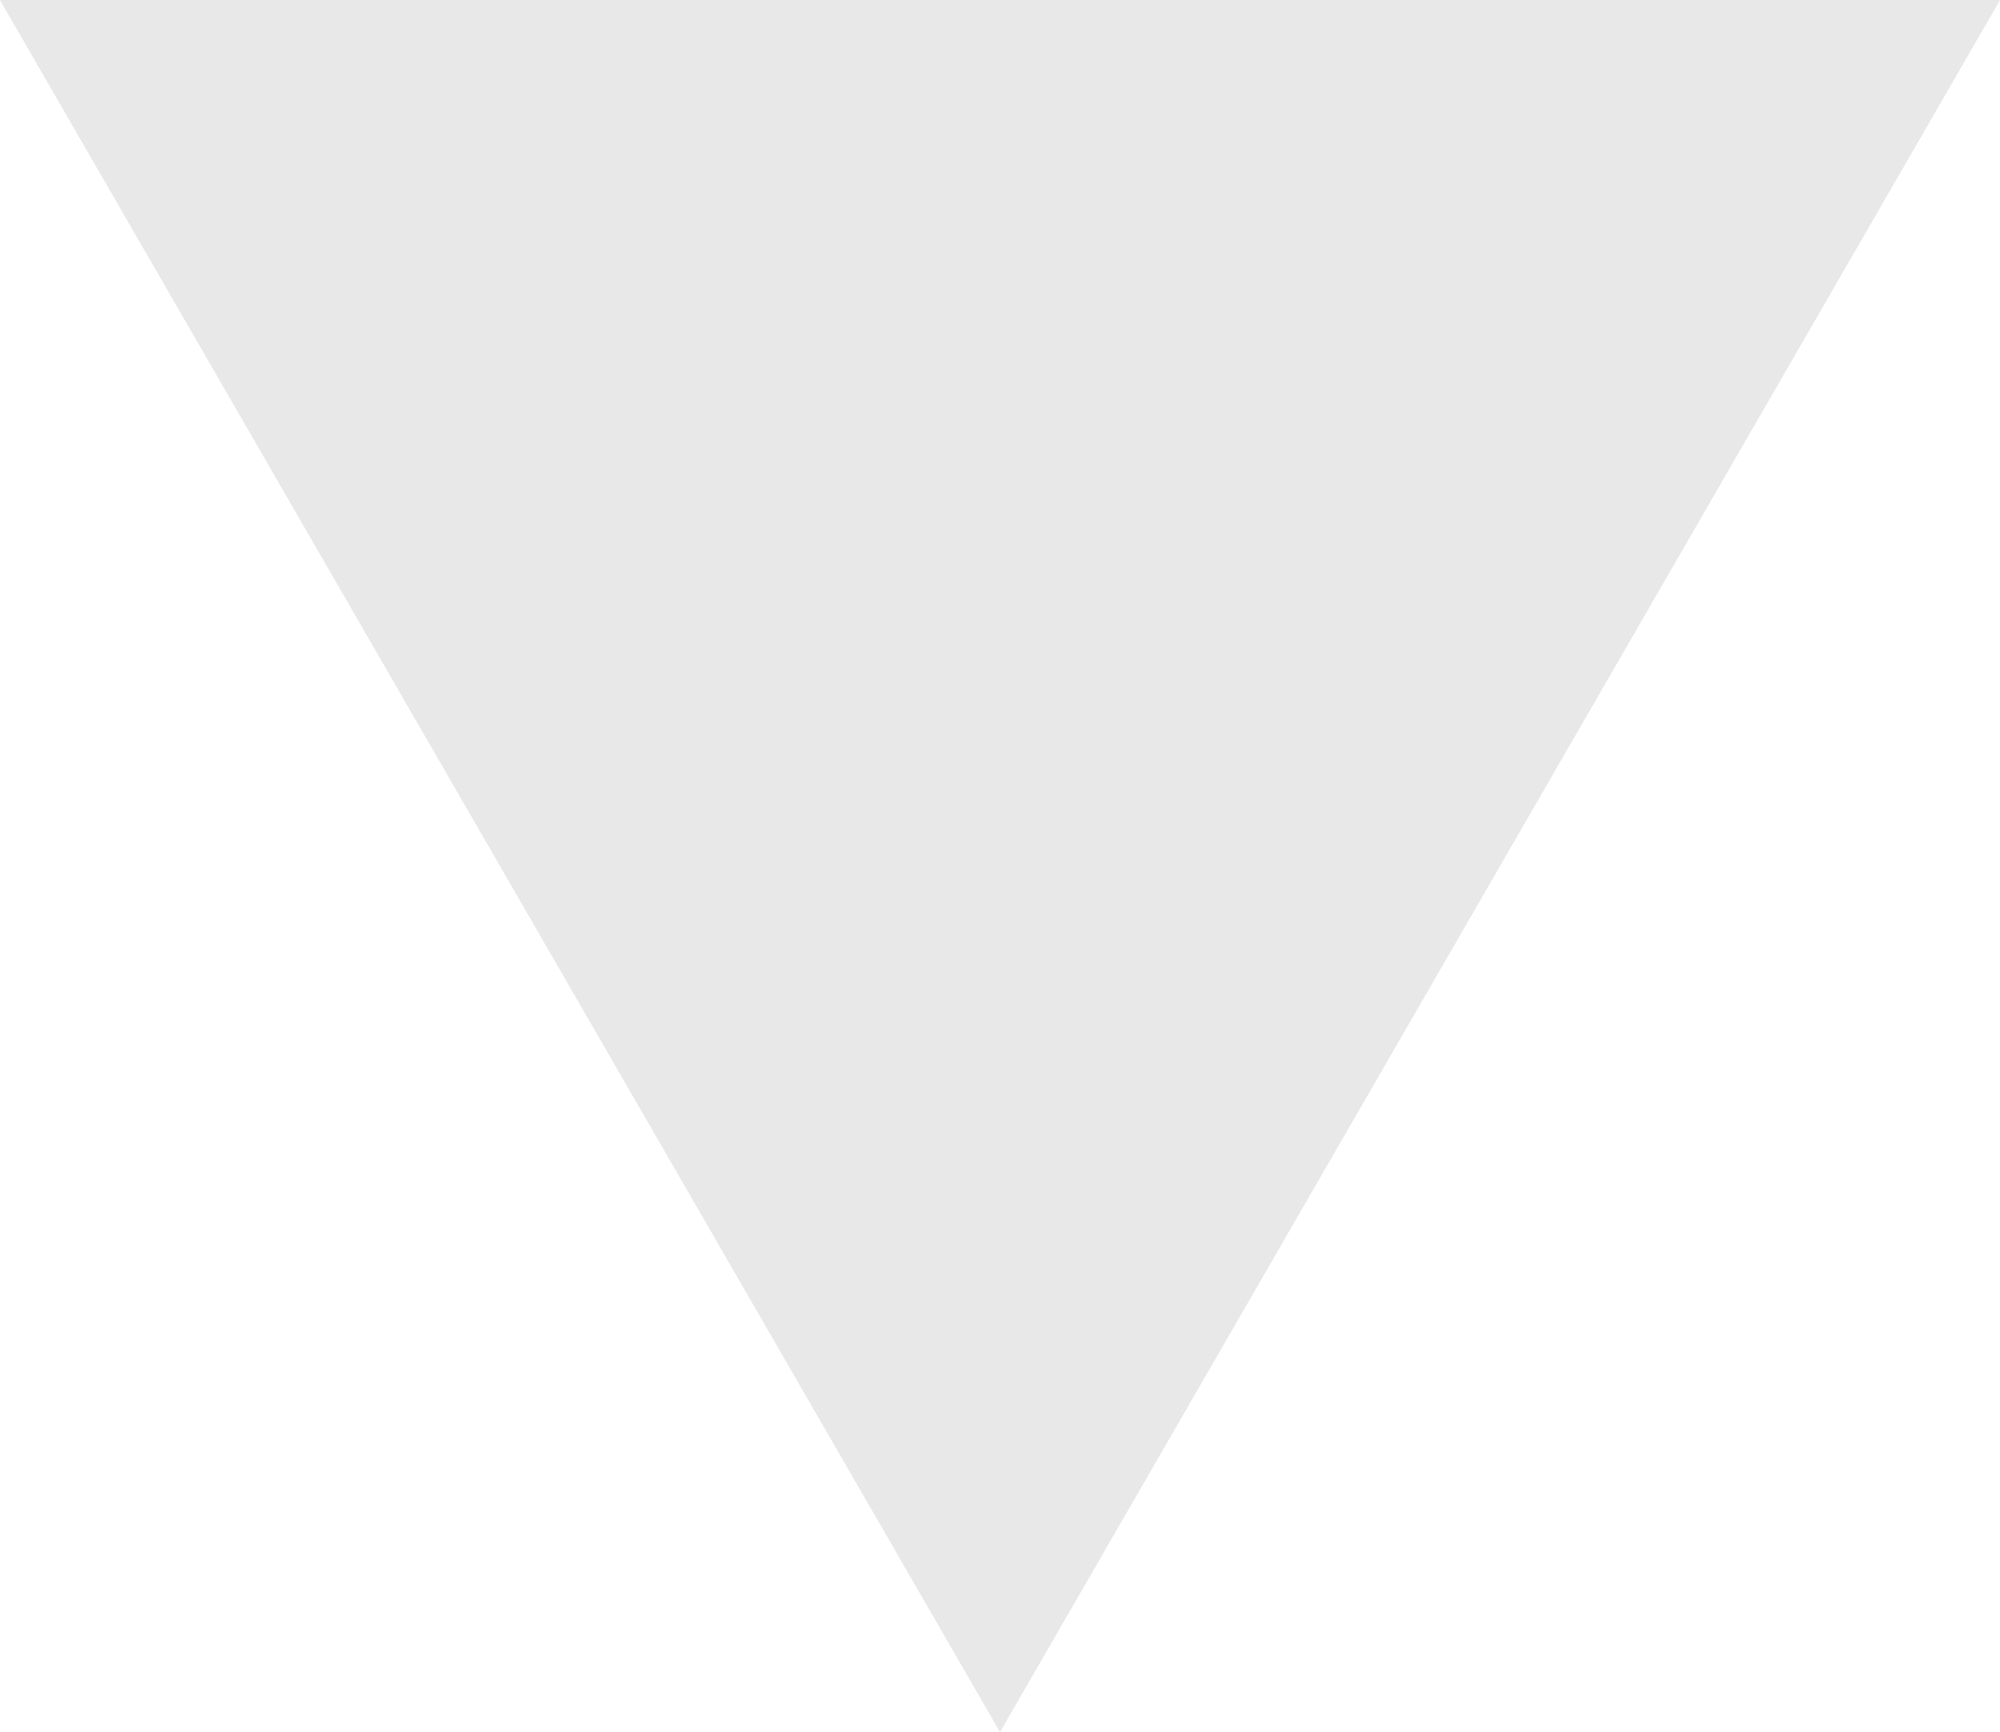 Tan-Triangle-Pointing-Down